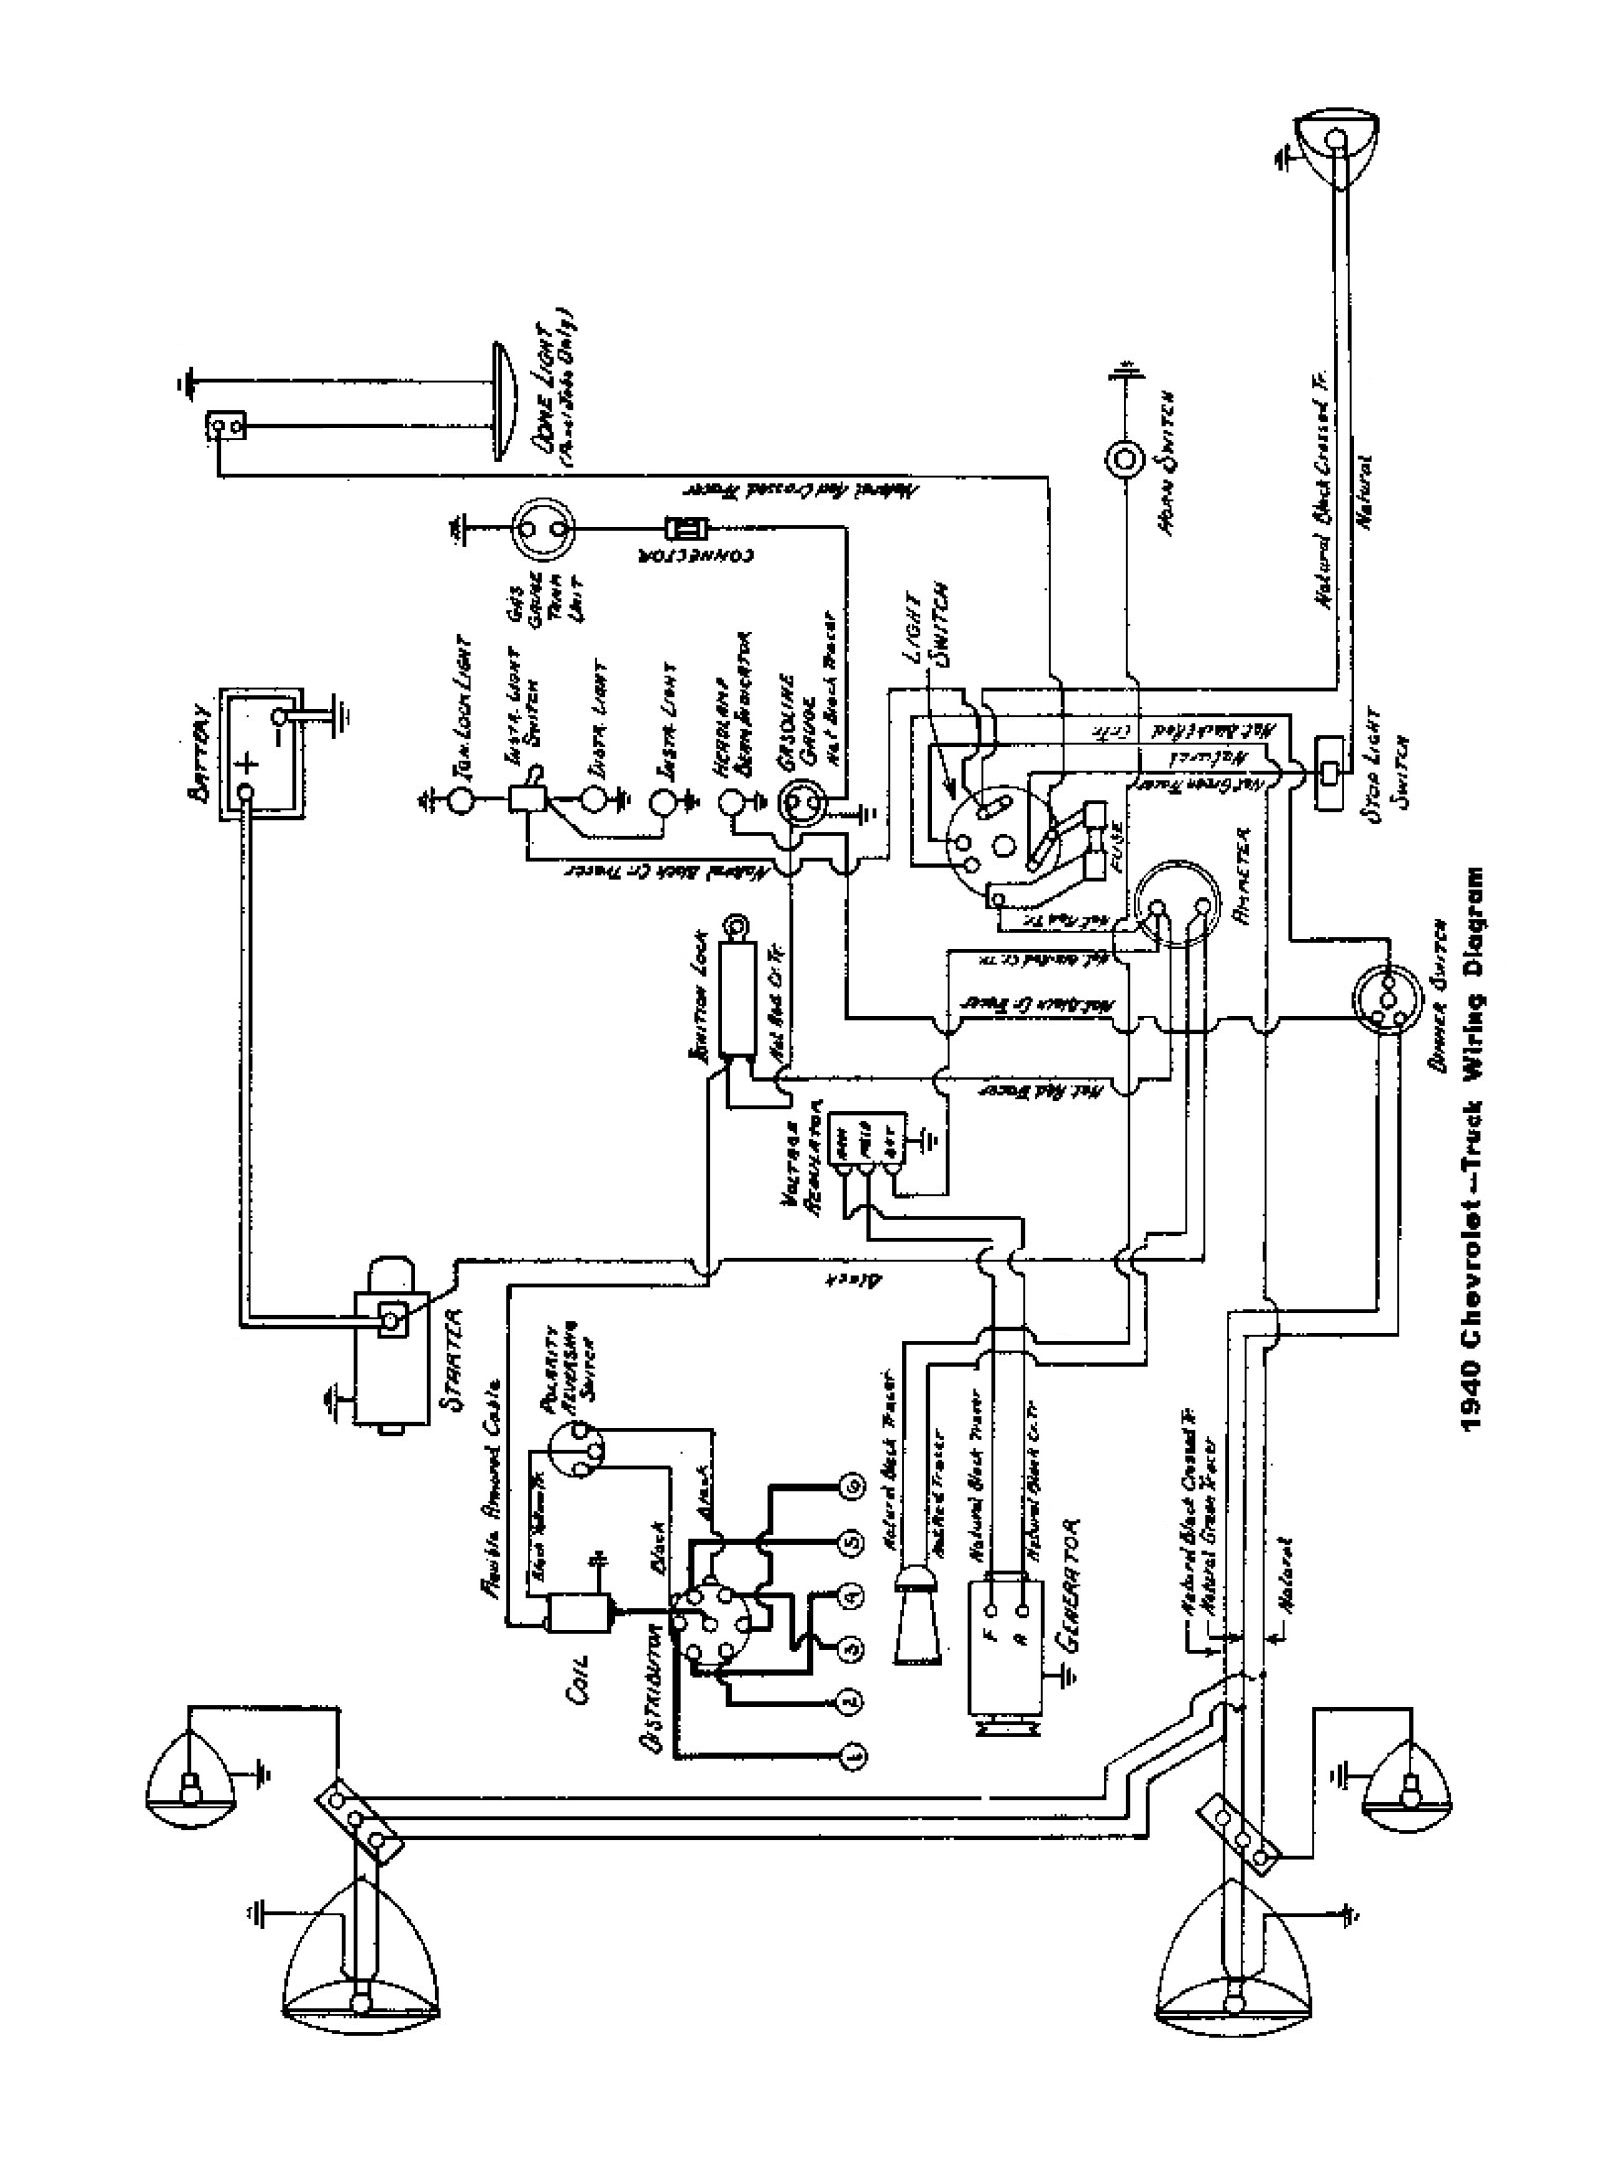 40truck chevy truck wiring diagram 87 chevy truck wiring diagram \u2022 wiring 65 Chevy Truck Wiring Diagram at soozxer.org